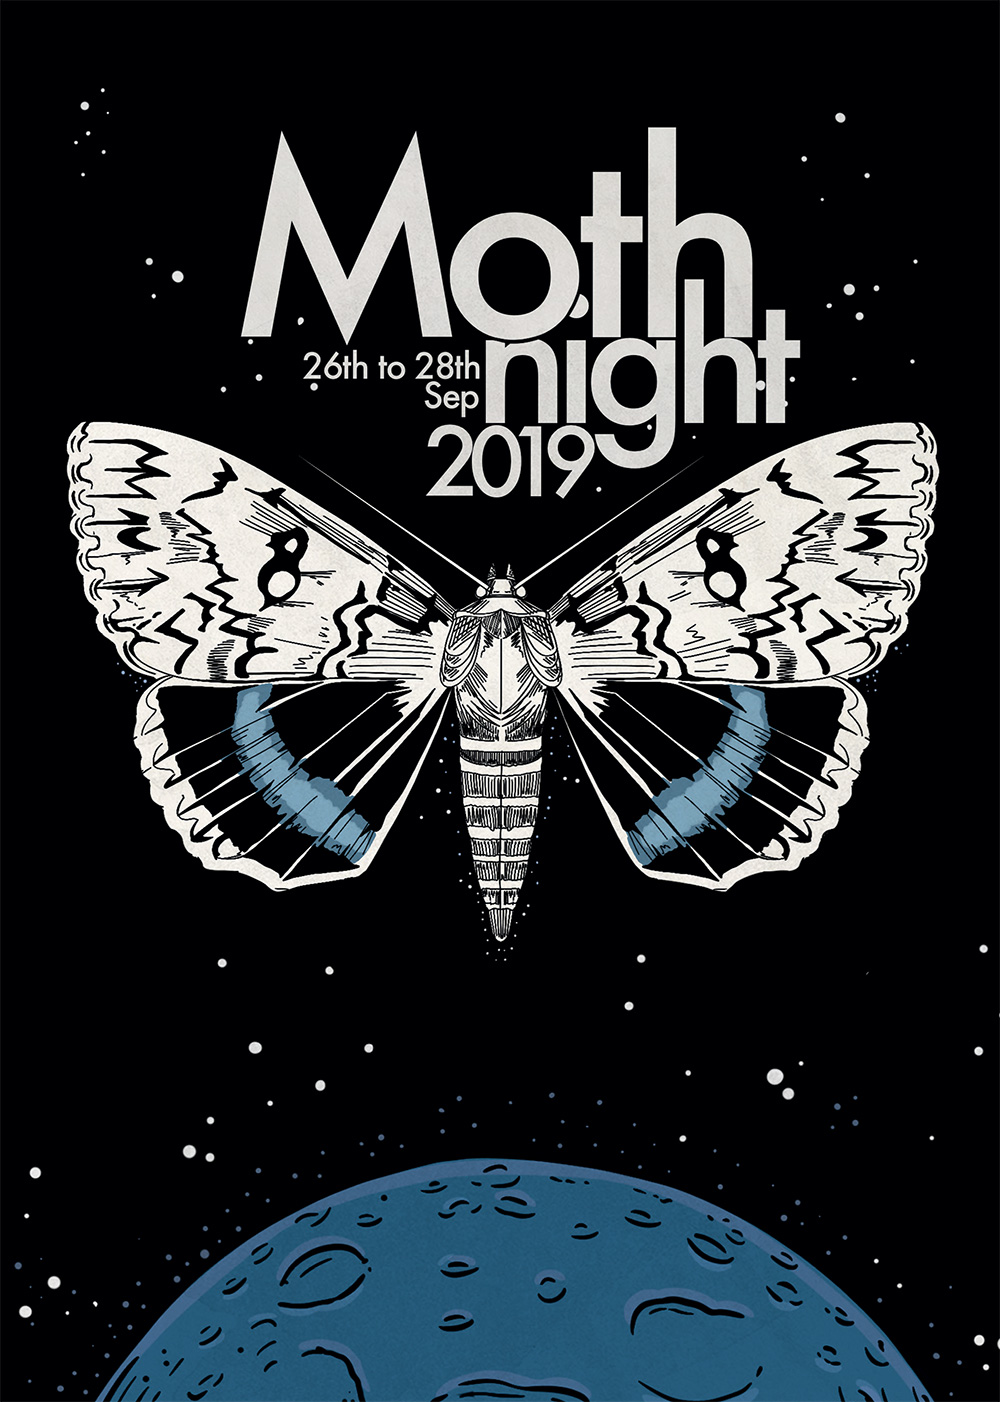 Moth Night 2019 flier